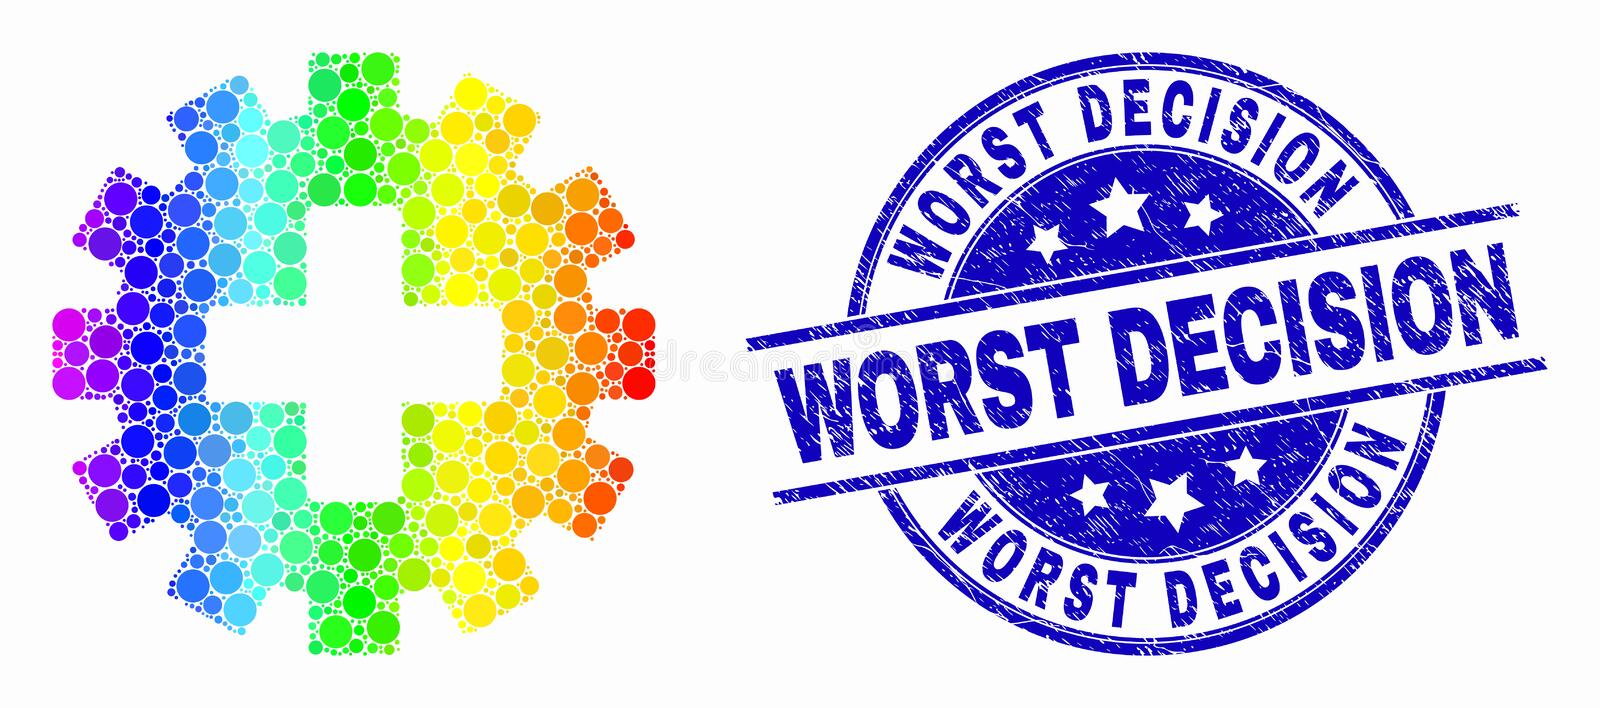 Vector Rainbow Colored Pixel Plus Gear Icon and Grunge Worst Decision Seal. Dot bright spectral plus gear mosaic pictogram and Worst Decision seal stamp. Blue vector illustration